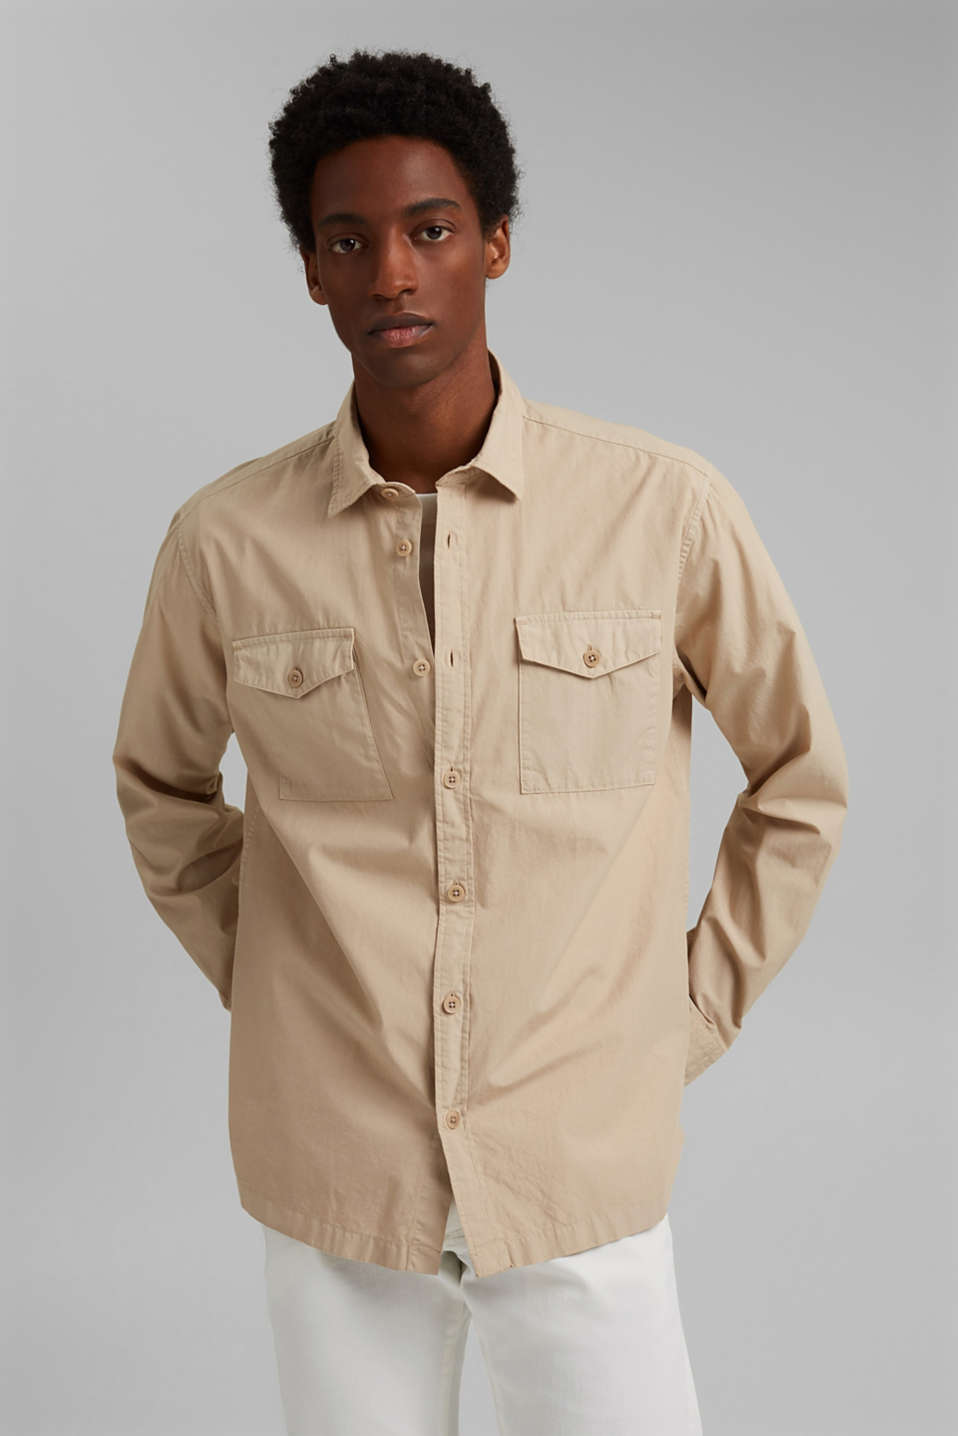 Esprit - #ReimagineNaturalLifestyle: Cotton shirt